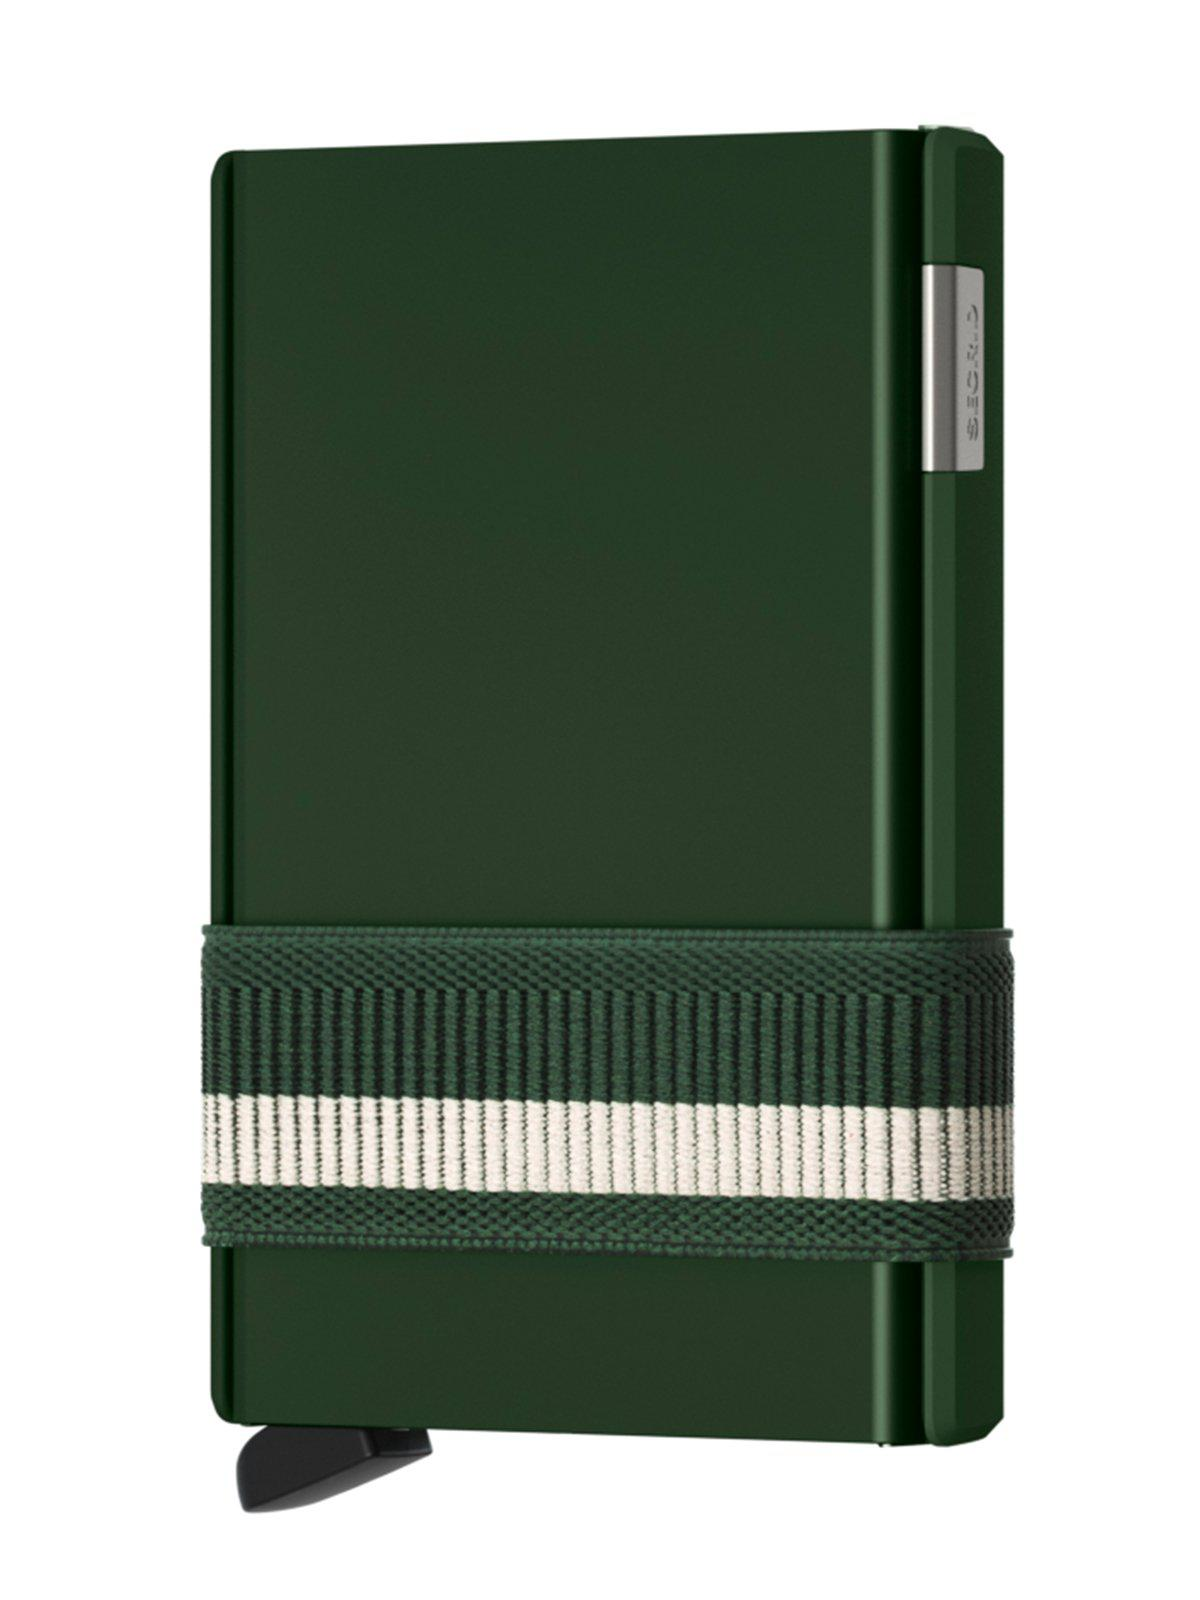 Secrid Cardslide Wallet Green